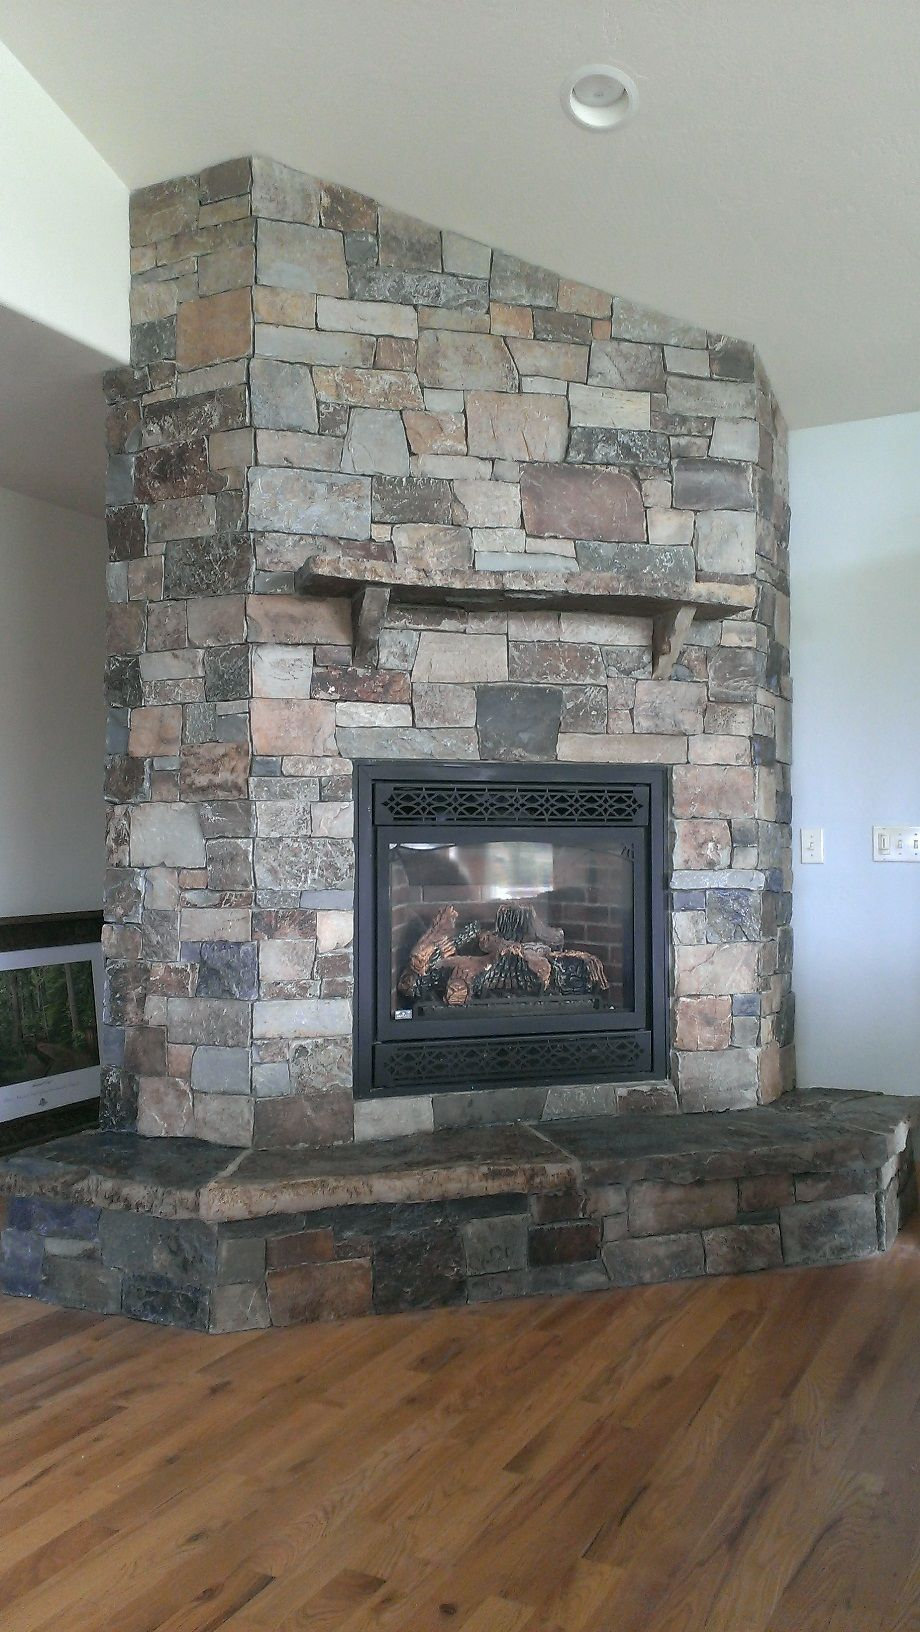 Granite Slab for Fireplace Hearth New Castle Rock Ledge Thin Veneer by Montana Rockworks